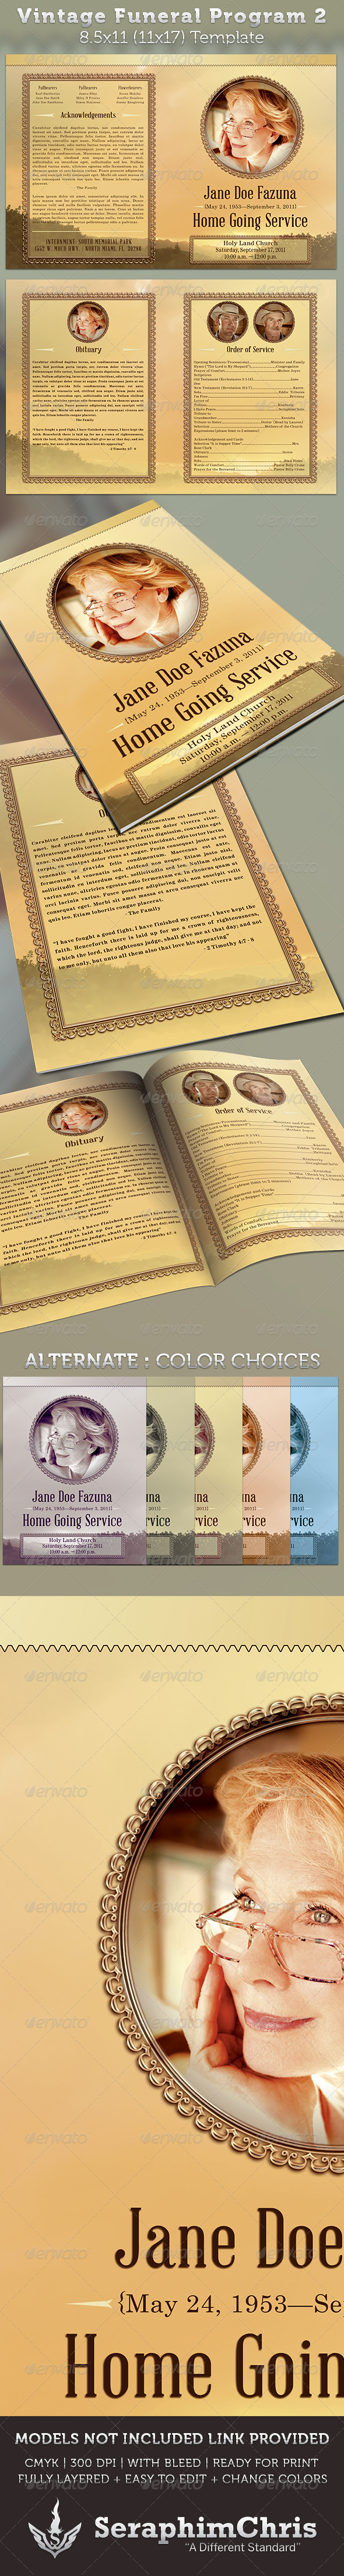 GraphicRiver Vintage Funeral Program Template 2 3286105